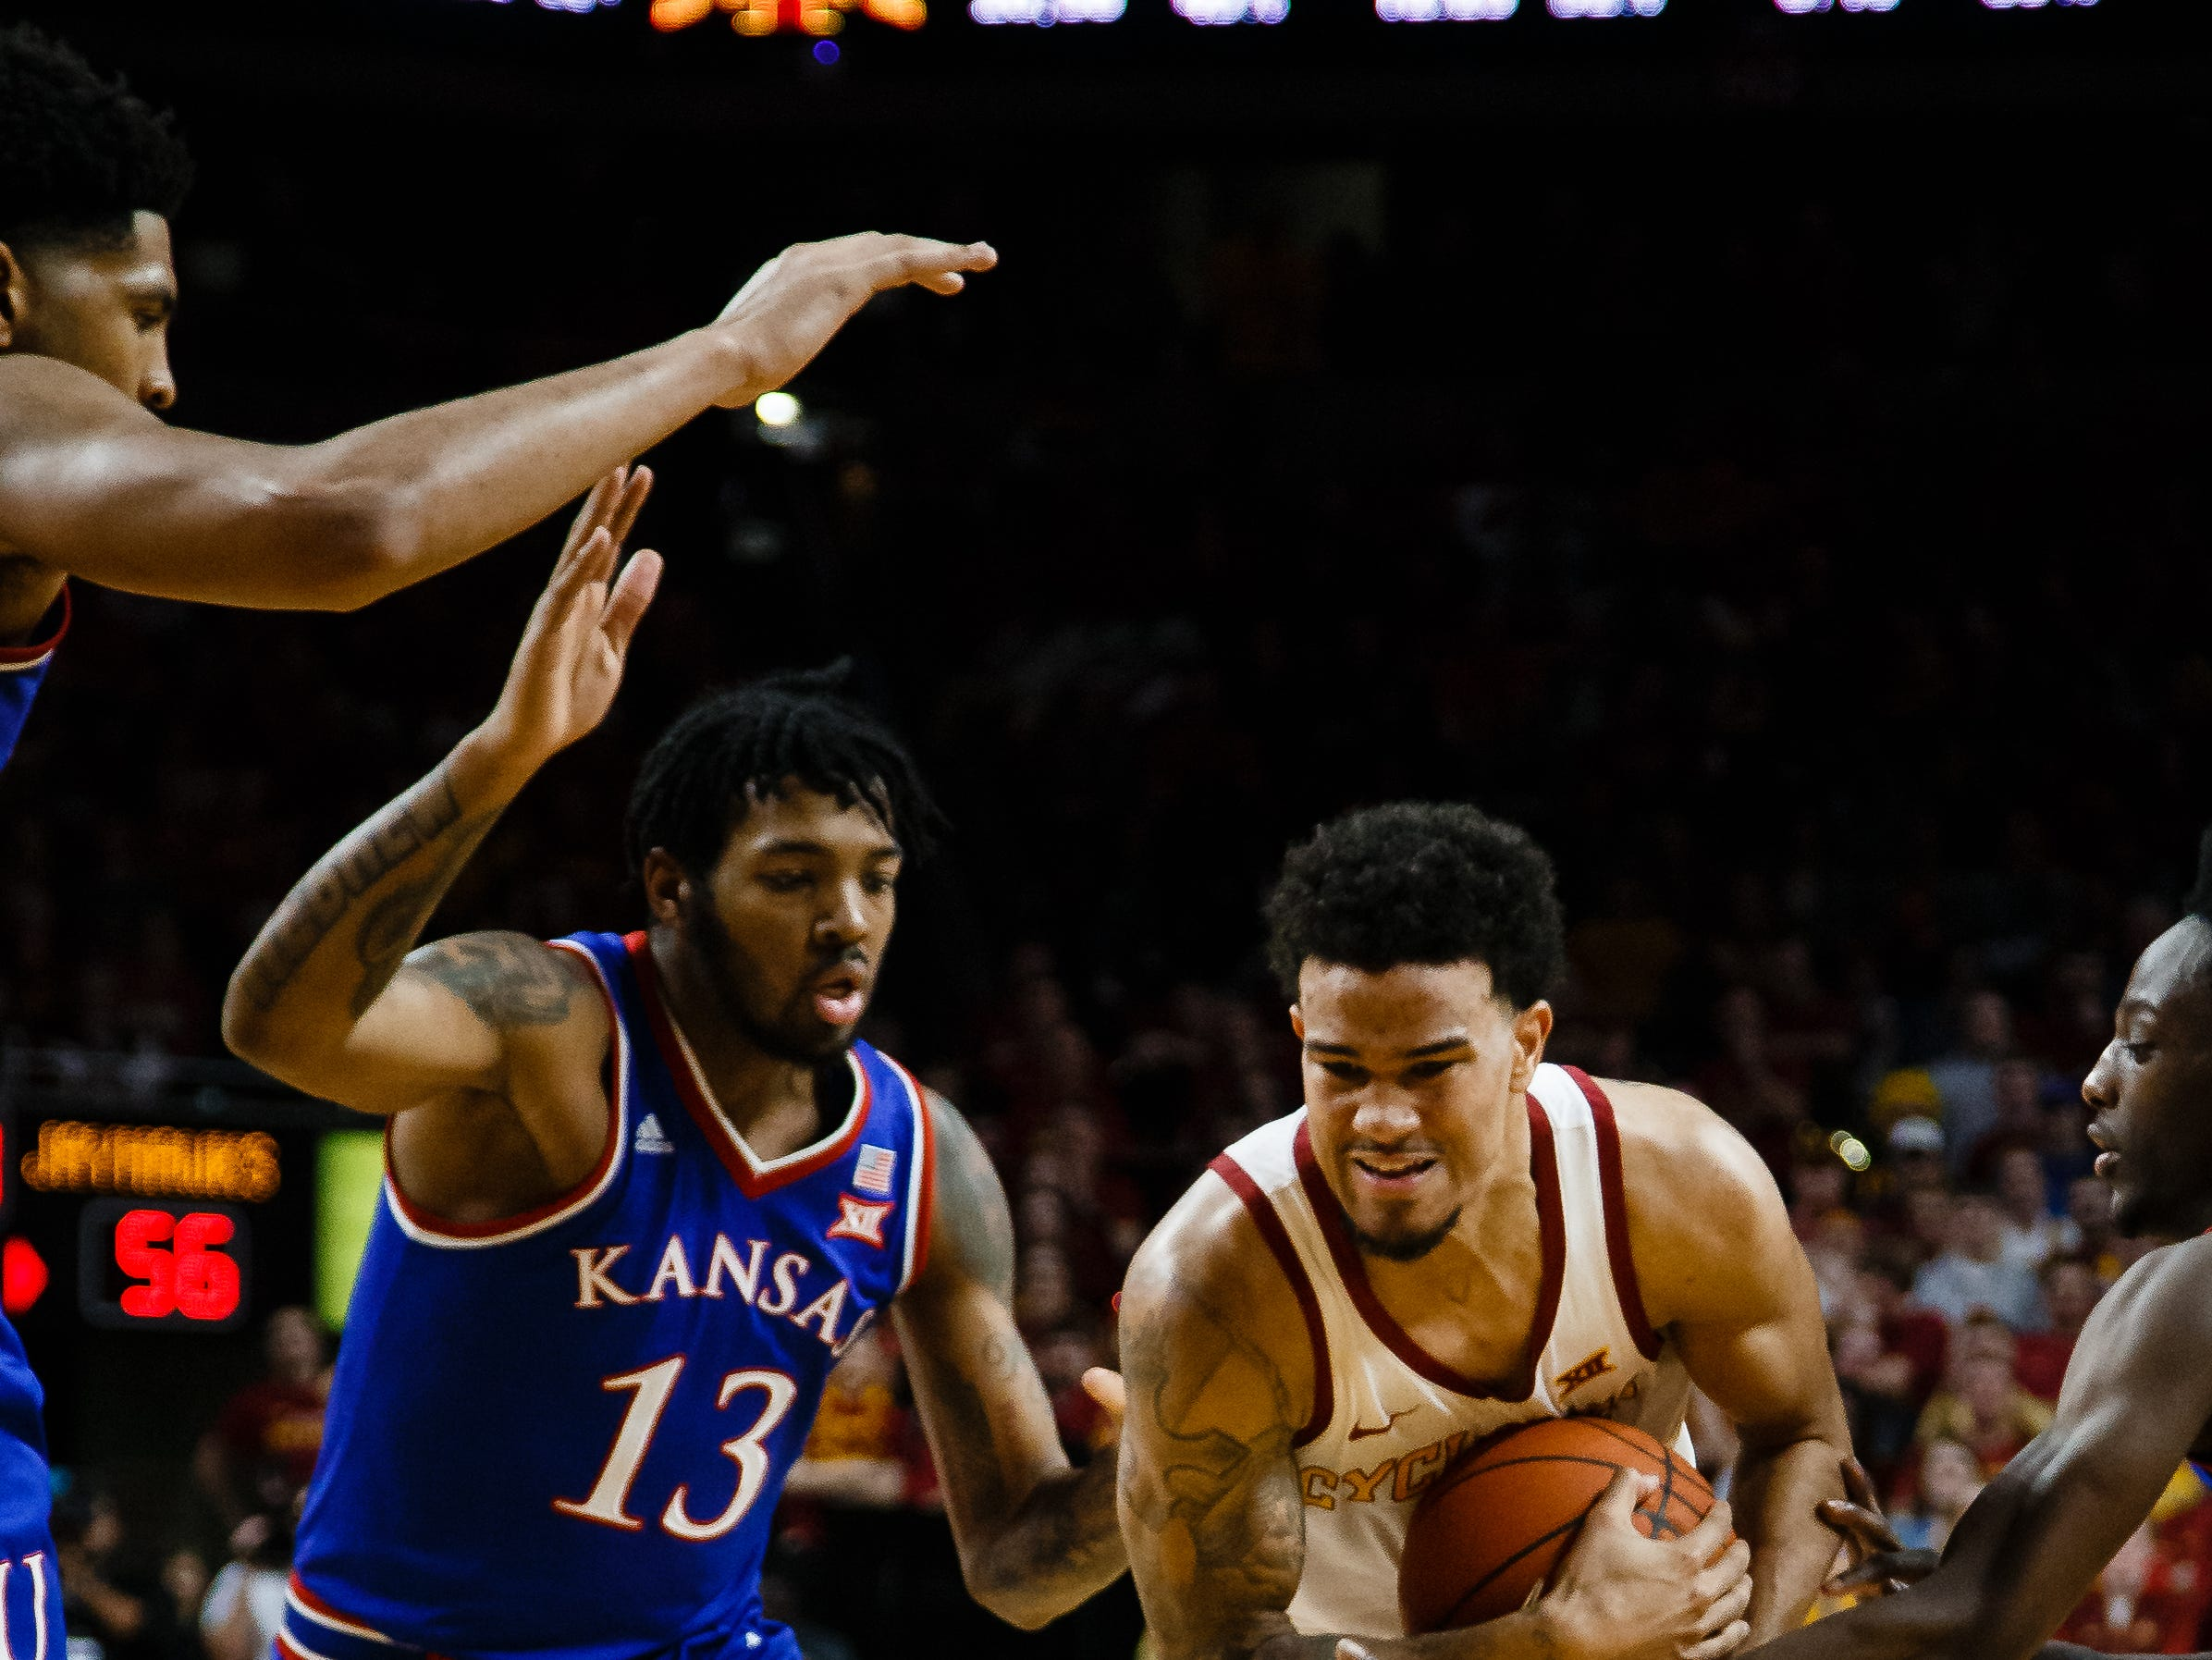 Iowa State's Nick Weiler-Babb (1) drives to the net during the second half of their basketball game on Saturday, Jan. 5, 2019, in Ames. Iowa State would go on to beat Kansas 77-60.